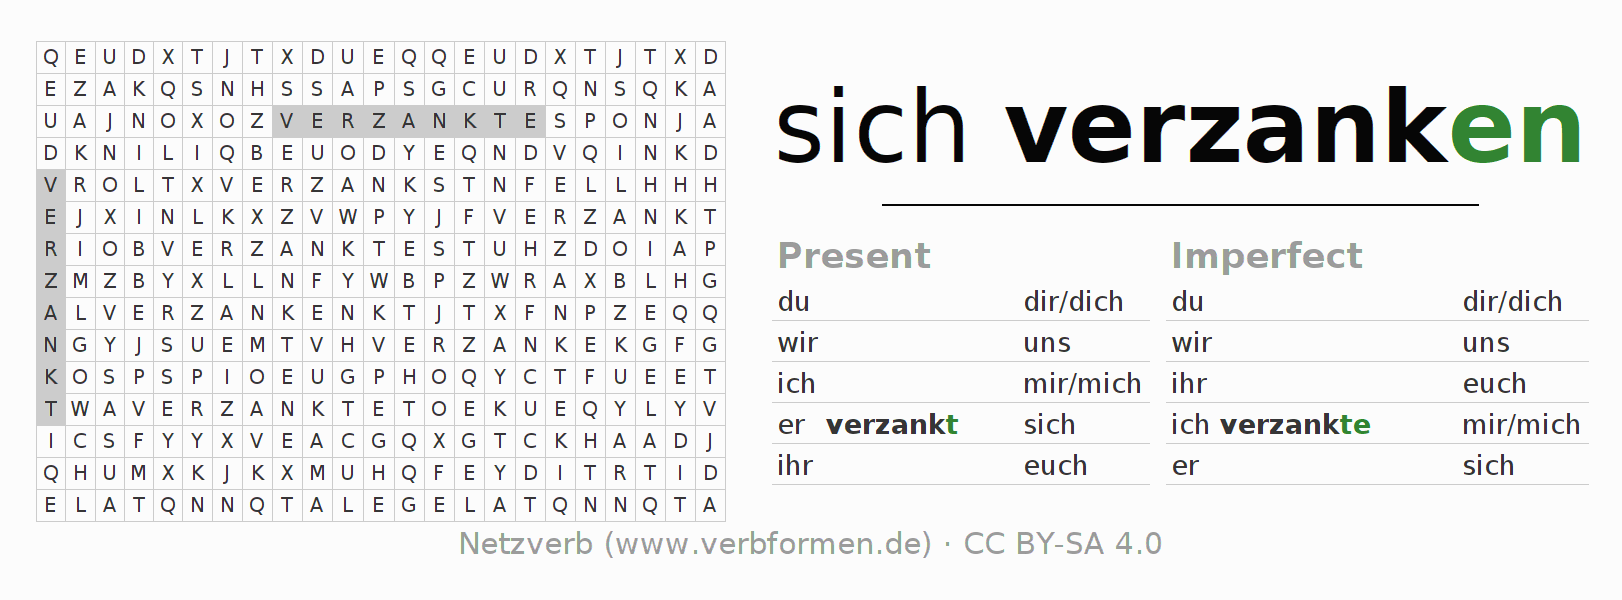 Word search puzzle for the conjugation of the verb sich verzanken